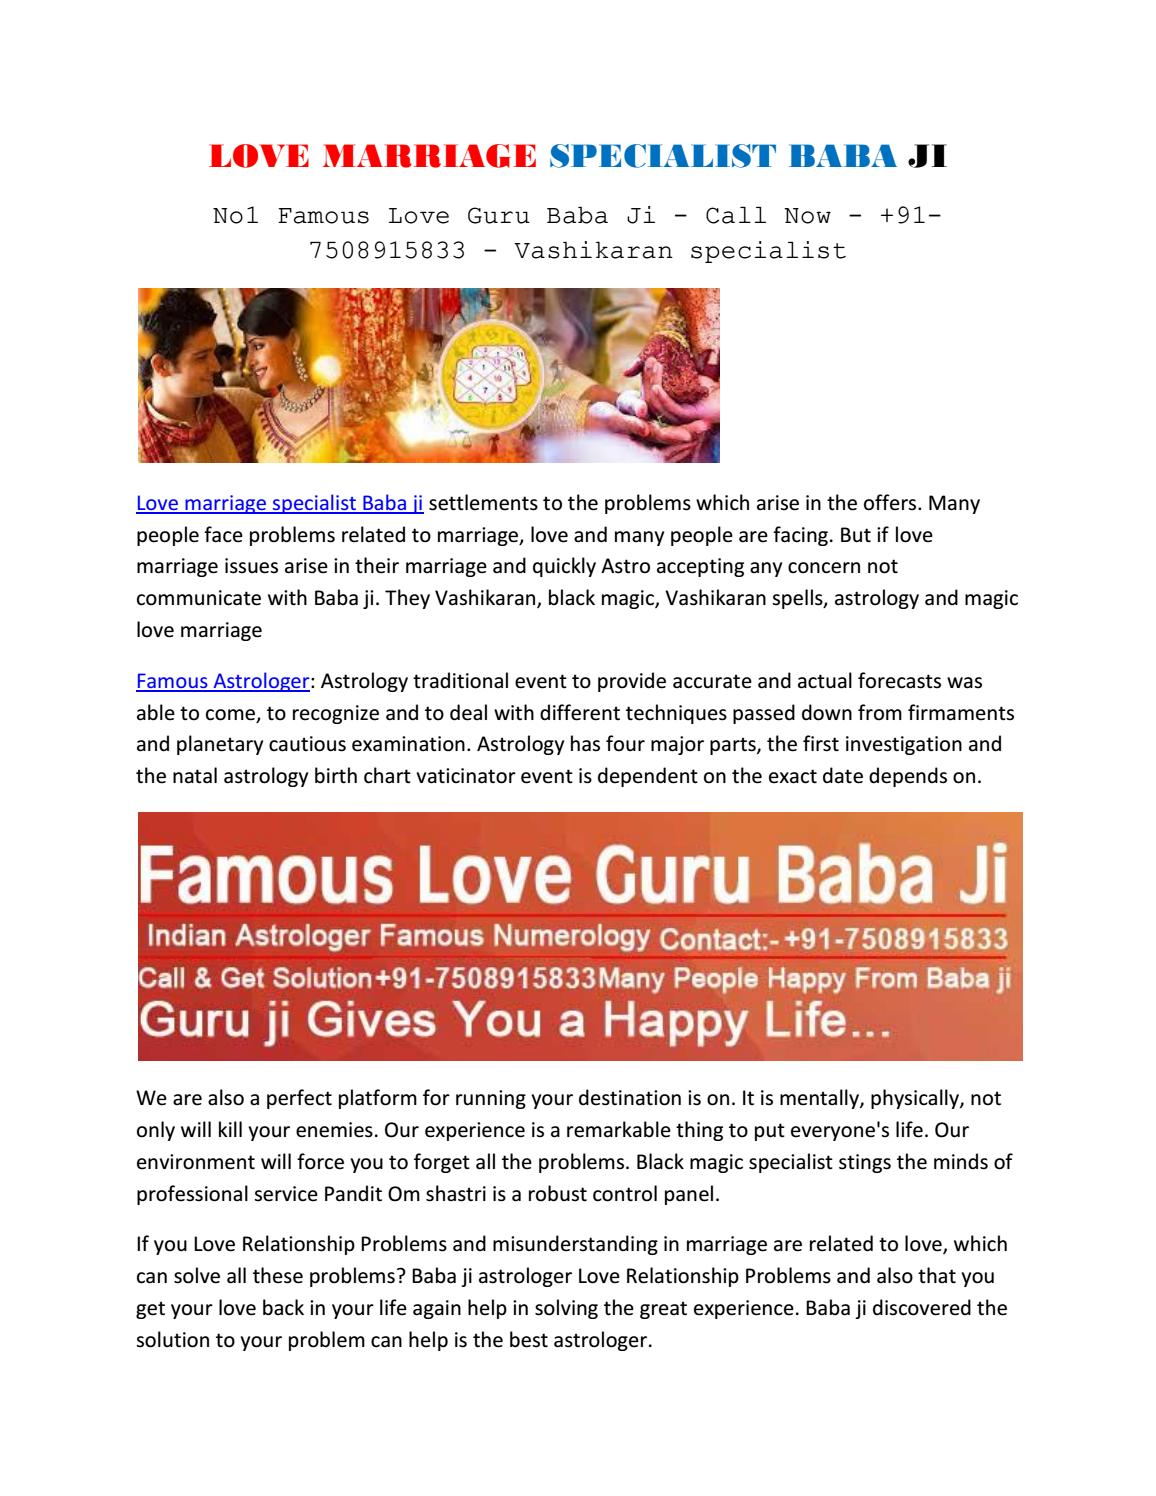 Love marriage specialist baba ji by Sameer Sulemani - issuu